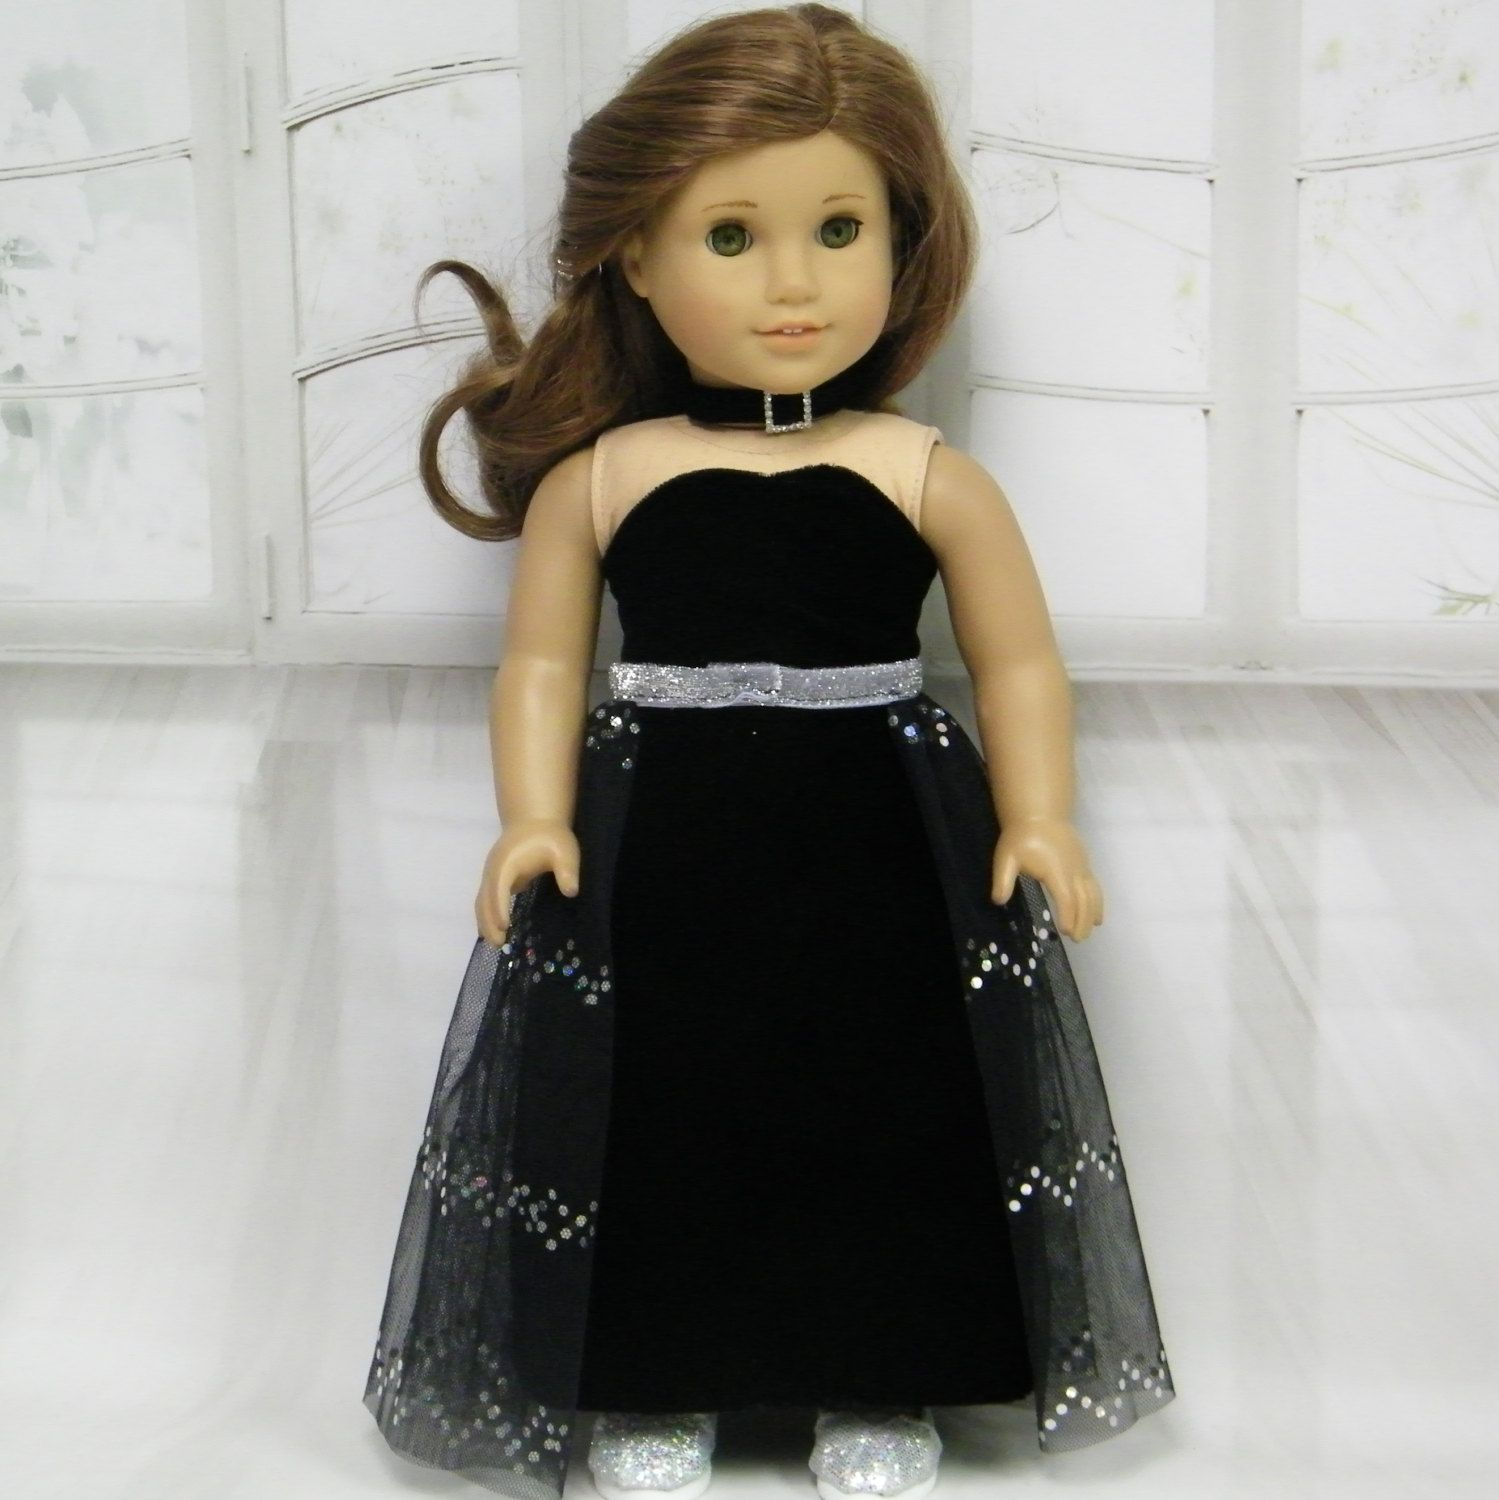 Black velvet gown with over skirt and choker by juliascreations on